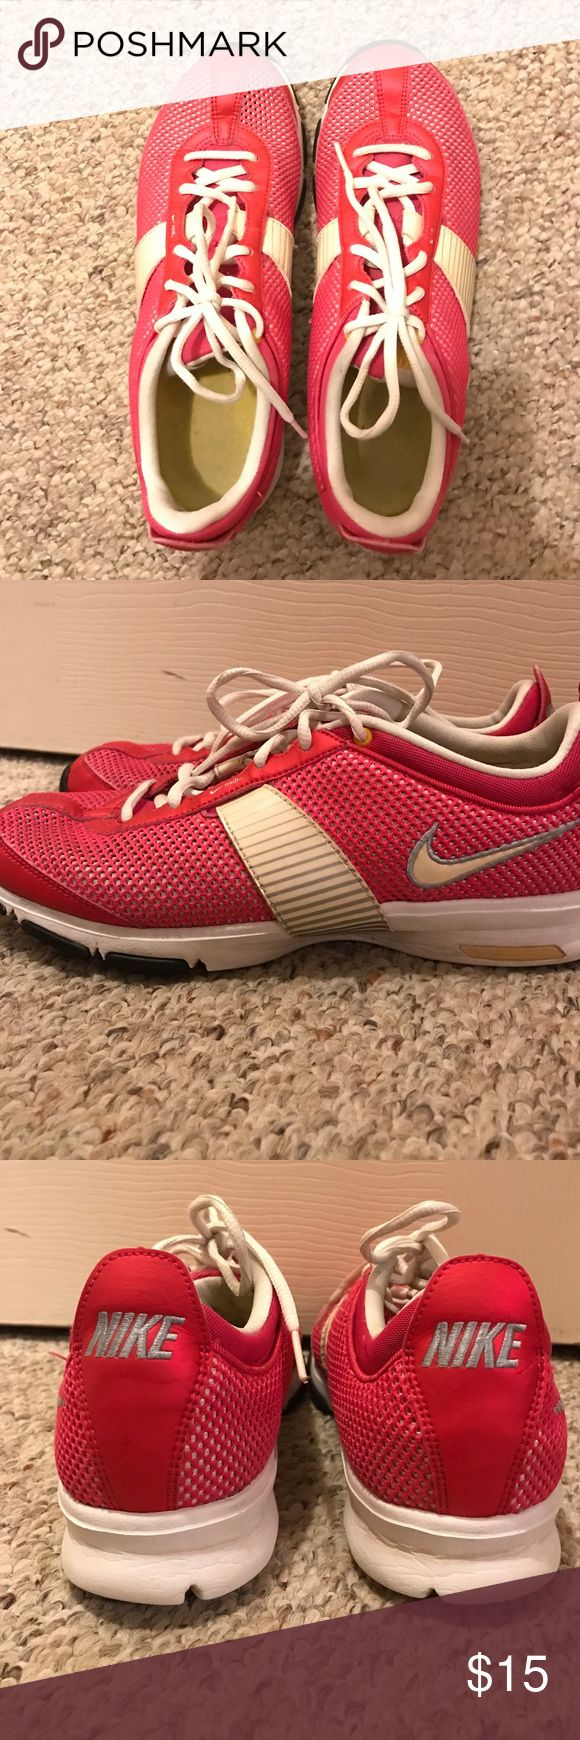 Hot Pink Nike Zooms! Hot Pink Nike Zooms! Size 9.5. They are in great condition, only getting rid of because I have too many and never get to wear these! Nike Shoes Athletic Shoes